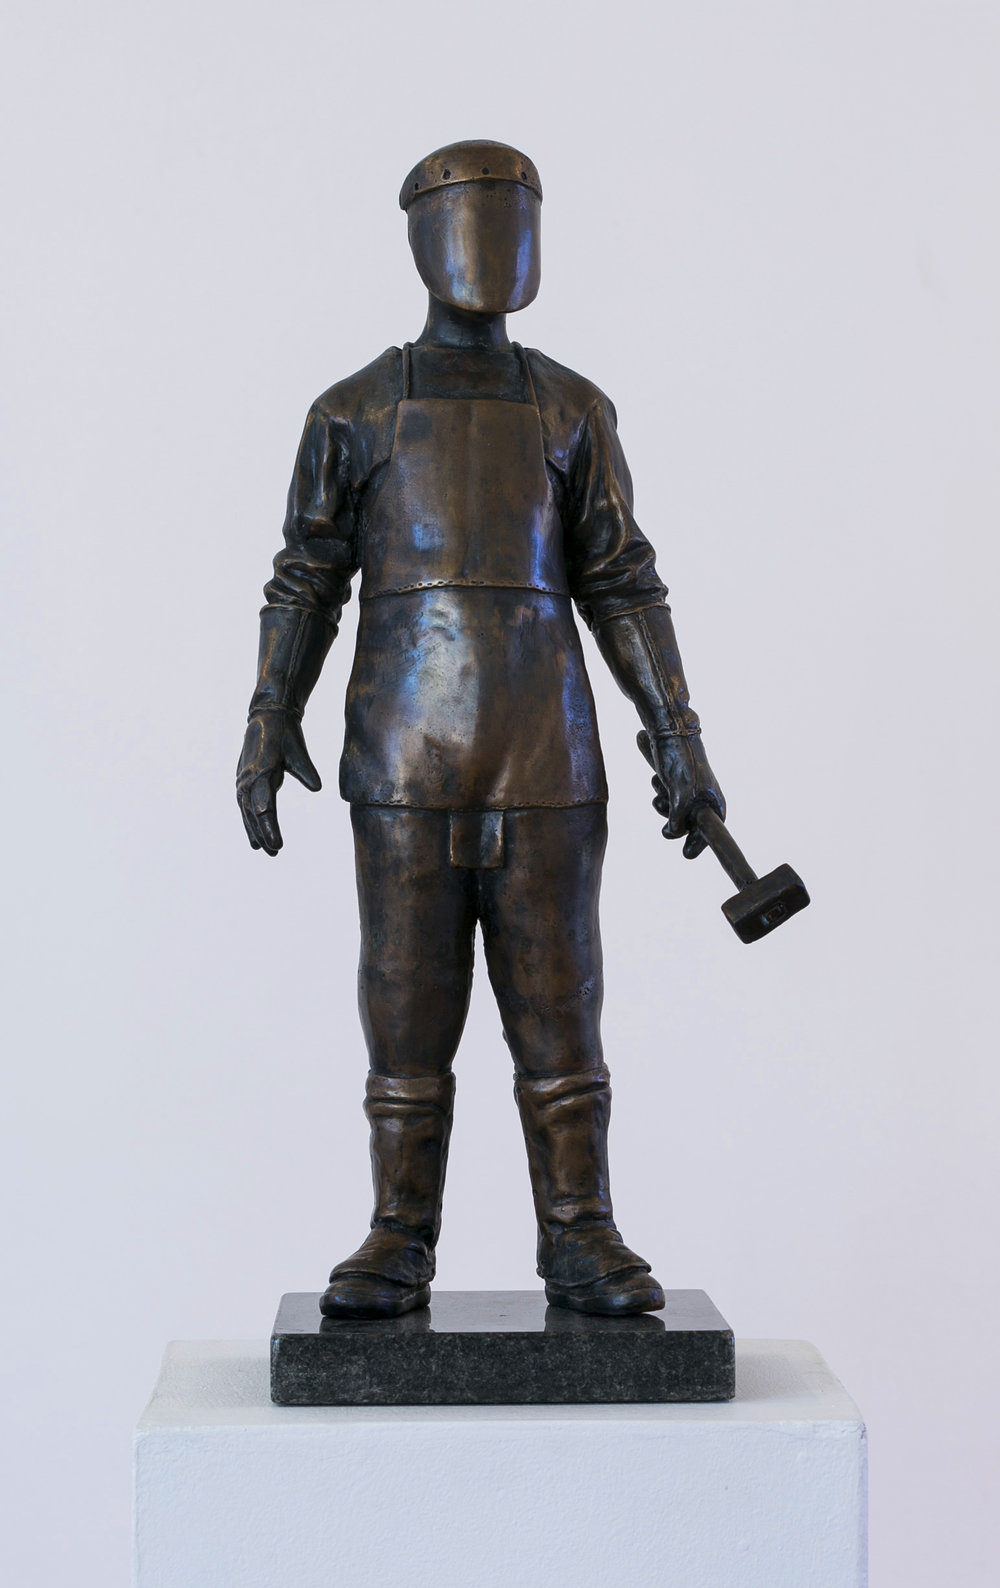 Jonathan van der Walt  The Craftsman  Bronze or resin, edition of 12  26 x 16 x 54 cm